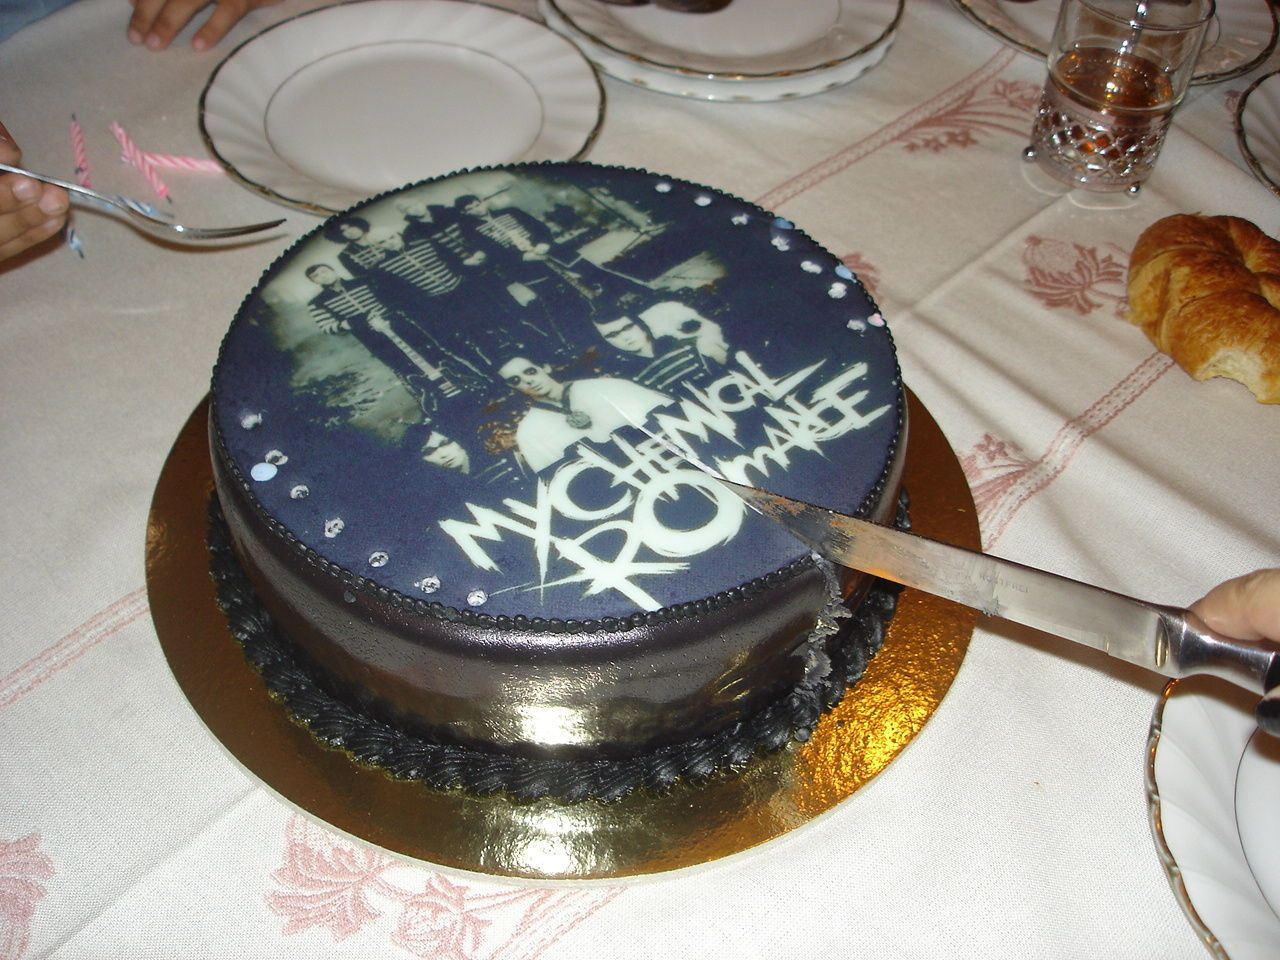 My Chemical Romance Cake - Molly would freak out if she got this for her birthday